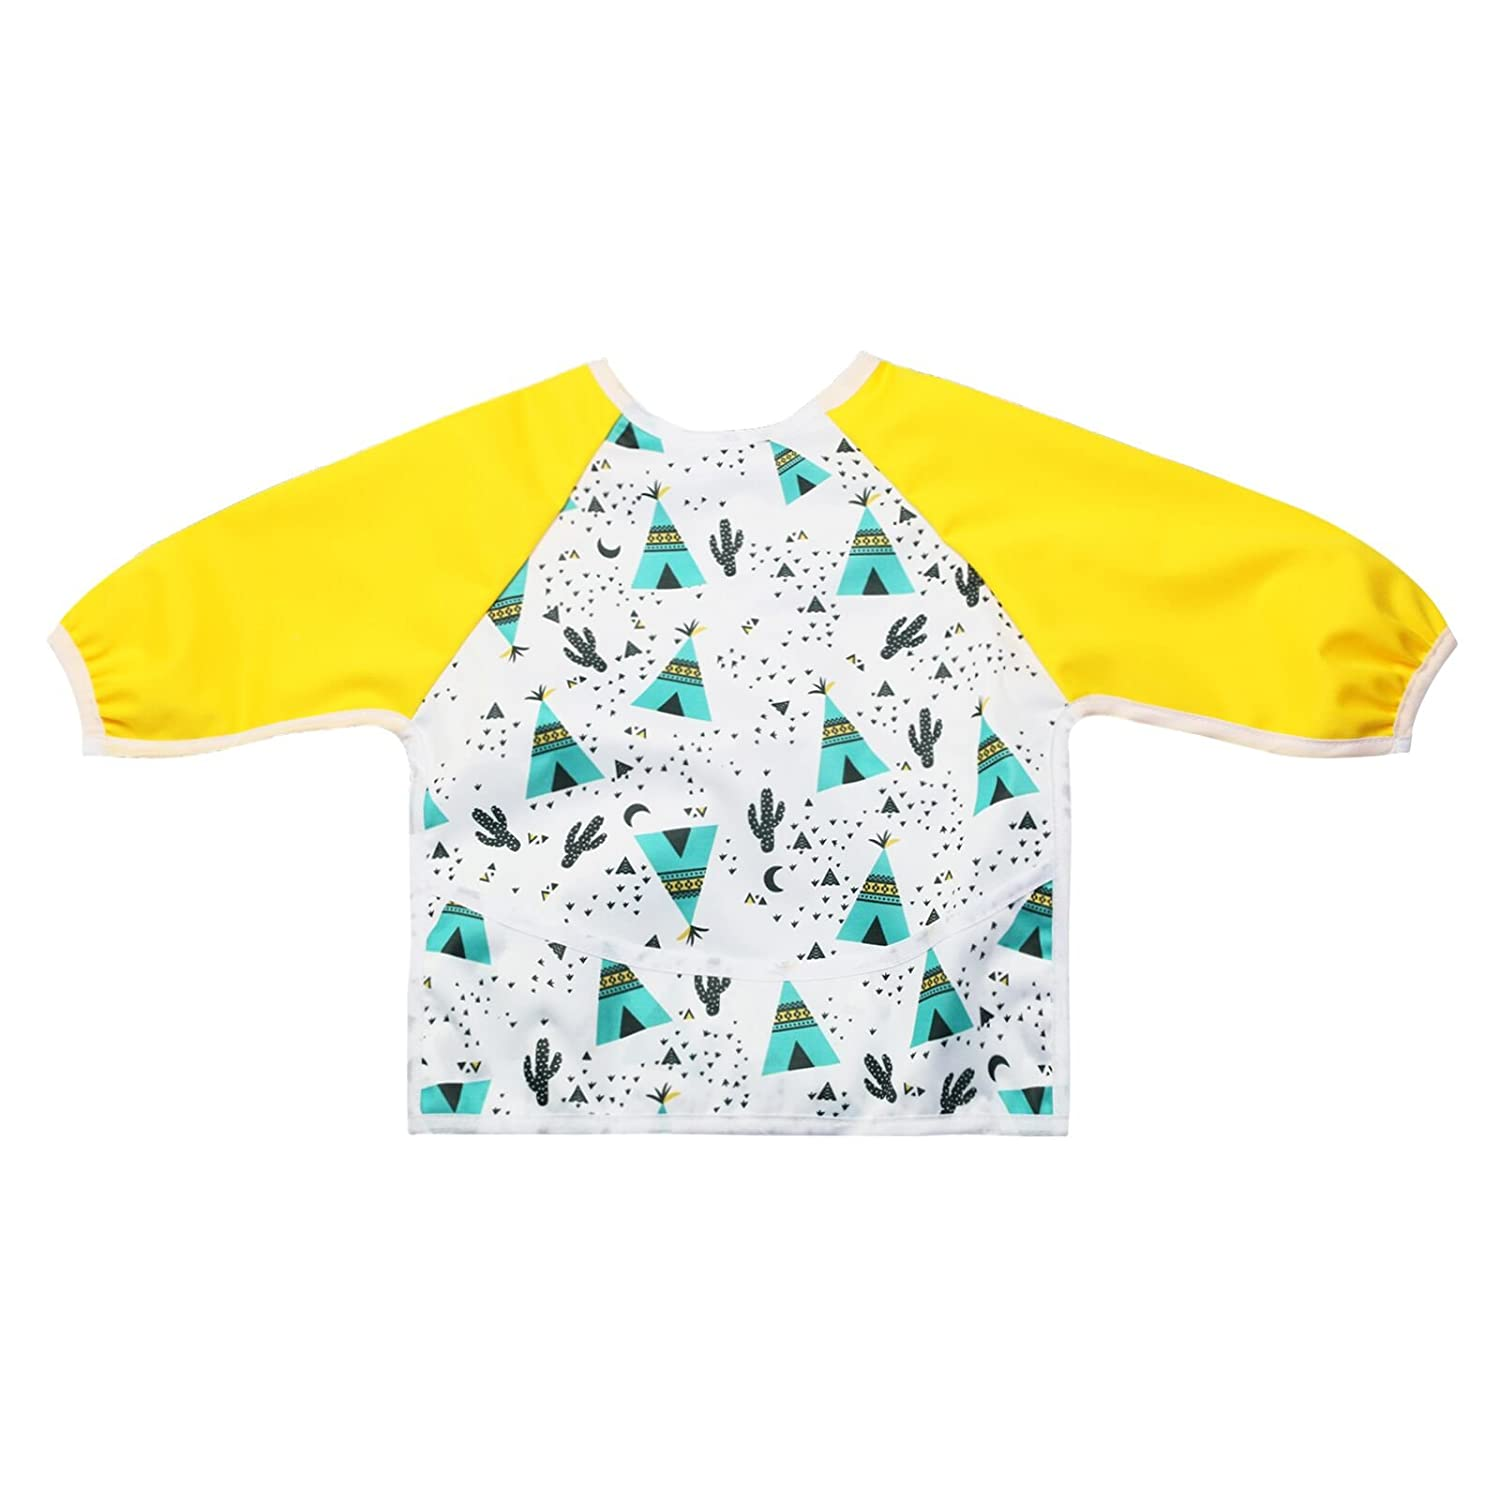 2 Pack Long Sleeved Bib Waterproof Bibs with Pocket for Baby and Toddler Dinosaur /& Animal 6 to 24 months Baby Boy and Girls by Little Jump